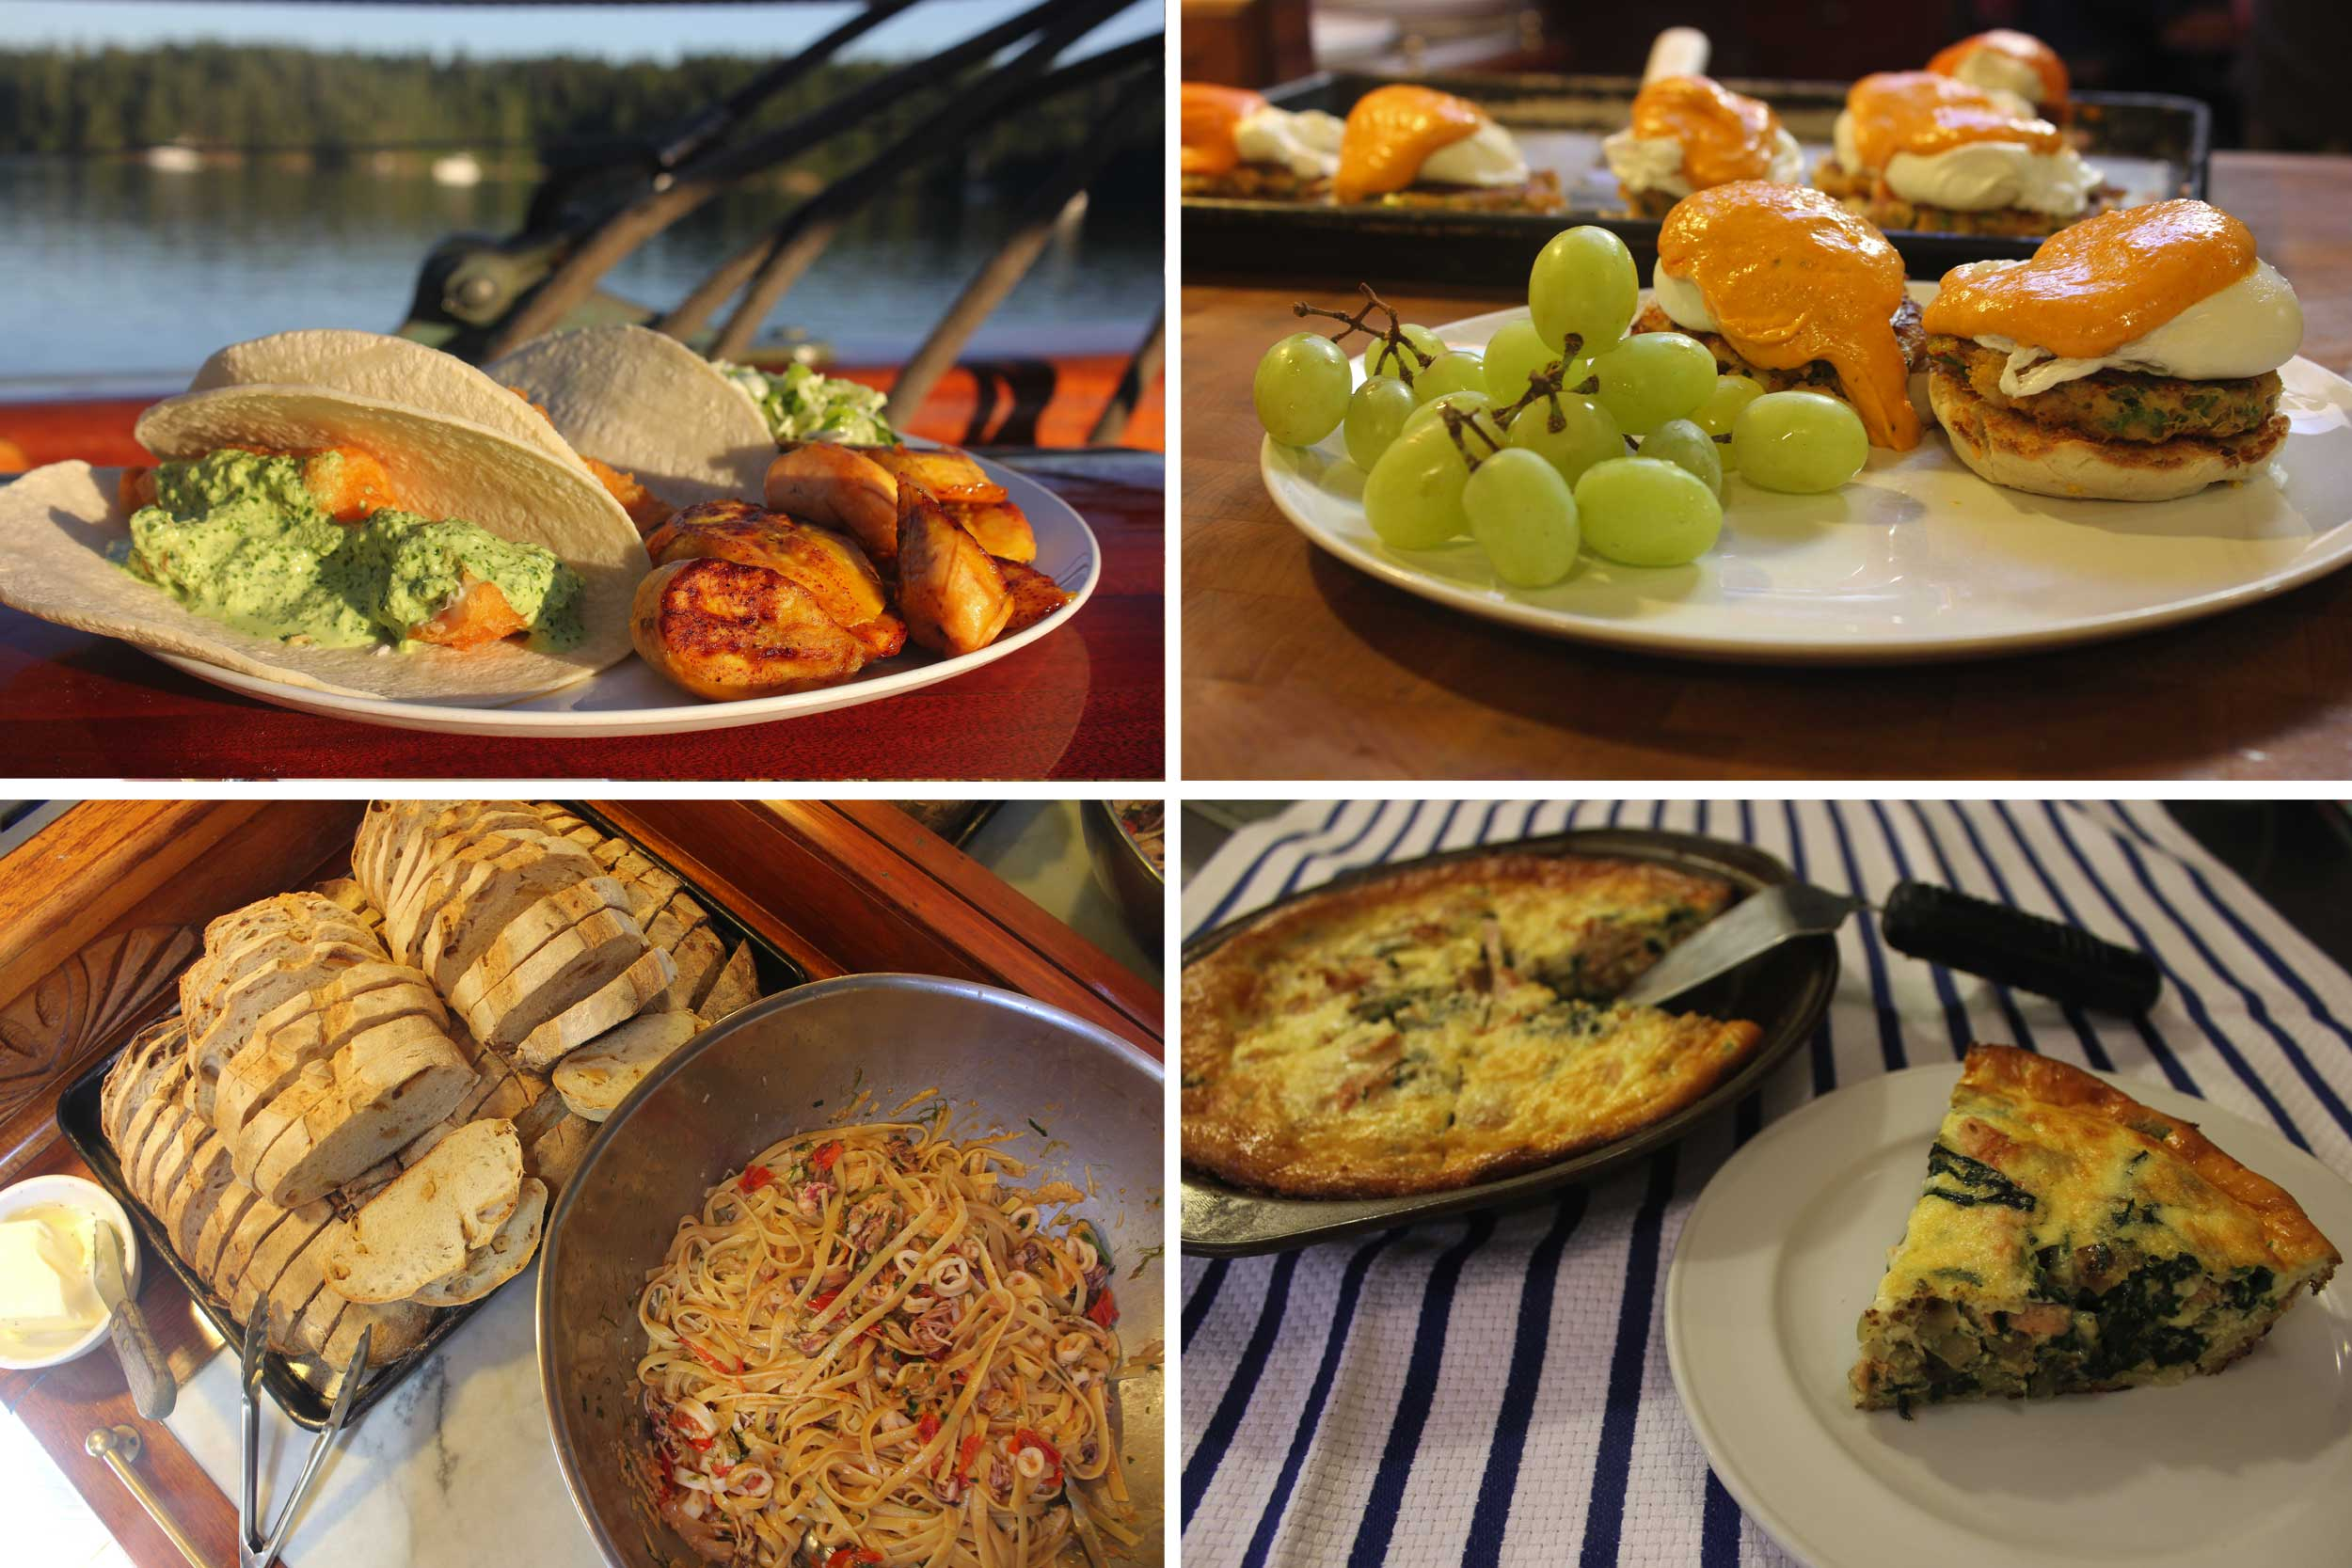 Montage of food dishes